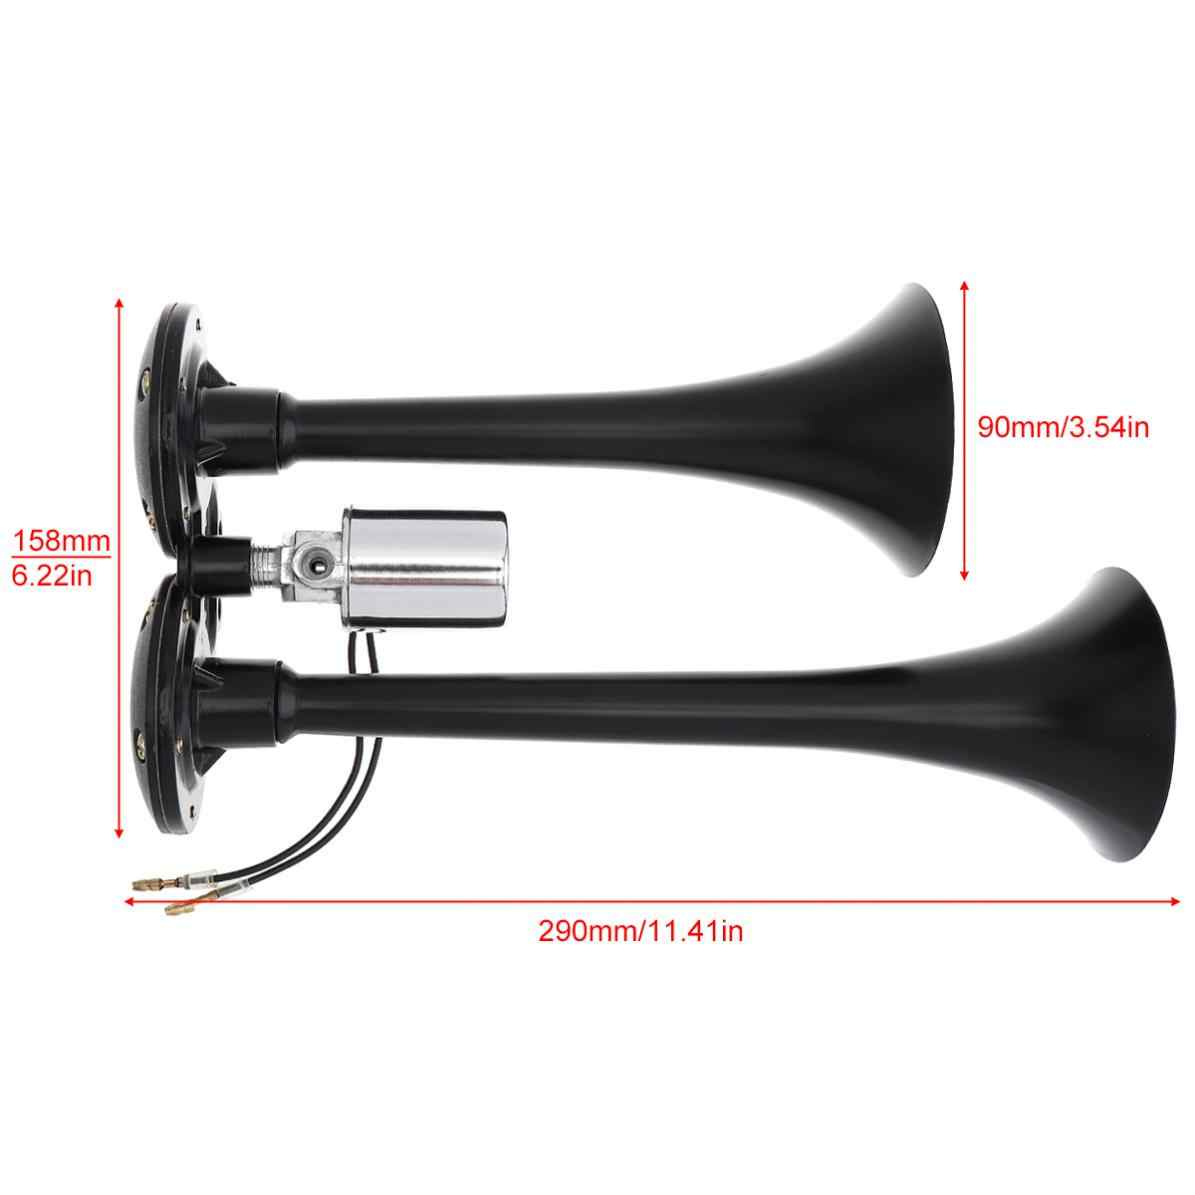 12V 178DB Universal Super Loud Black Dual Car Trumpet Electronically Controlled Car Air Horn for Cars / Trucks /Boats